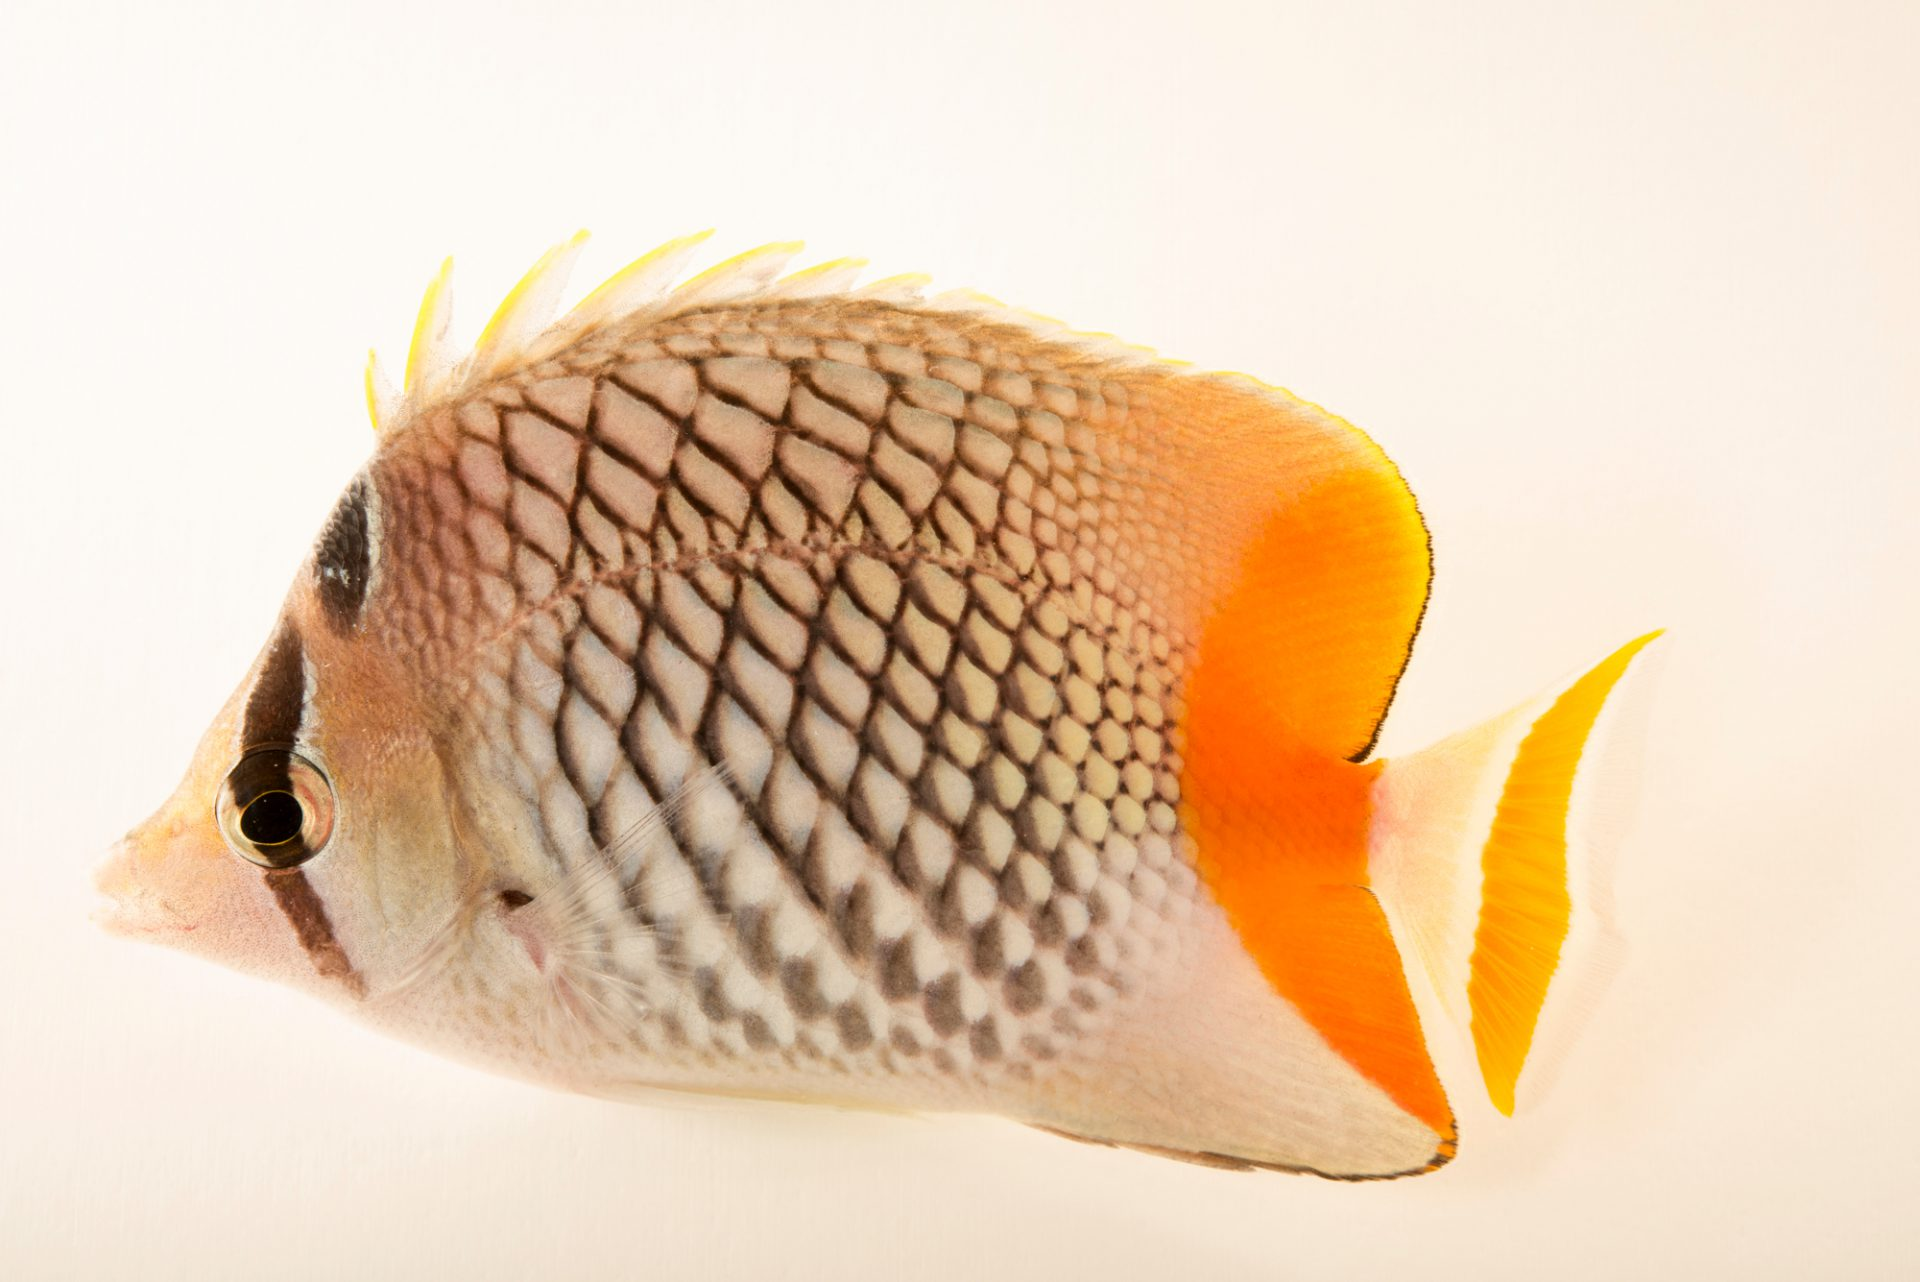 Photo: Pearlscale butterflyfish (Chaetodon xanthurus) from a private collection.